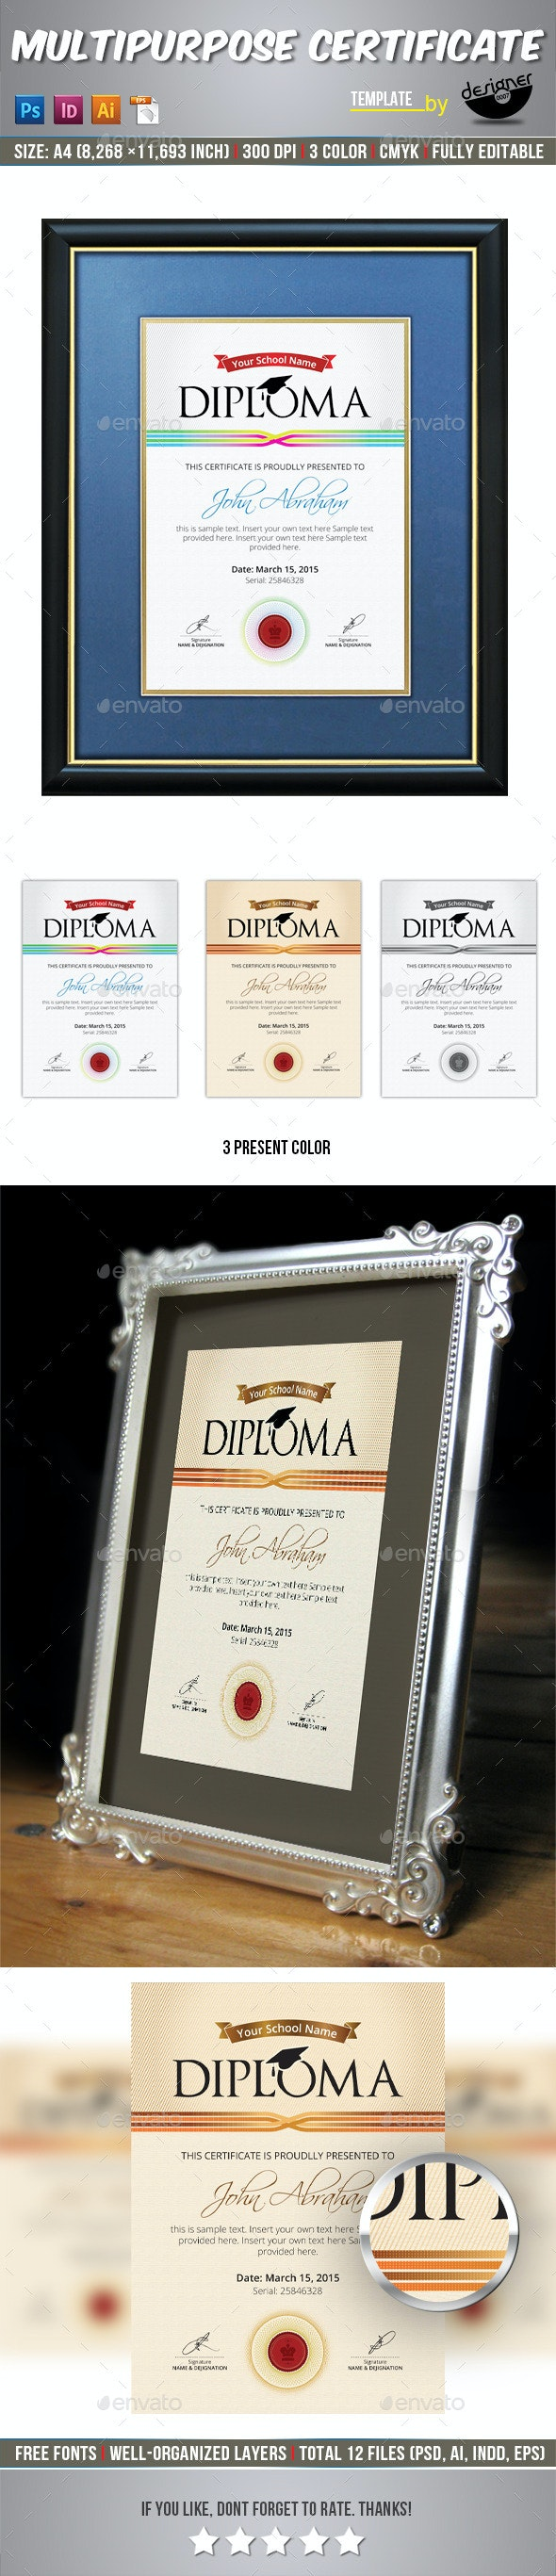 Diploma Certificate Template - Certificates Stationery